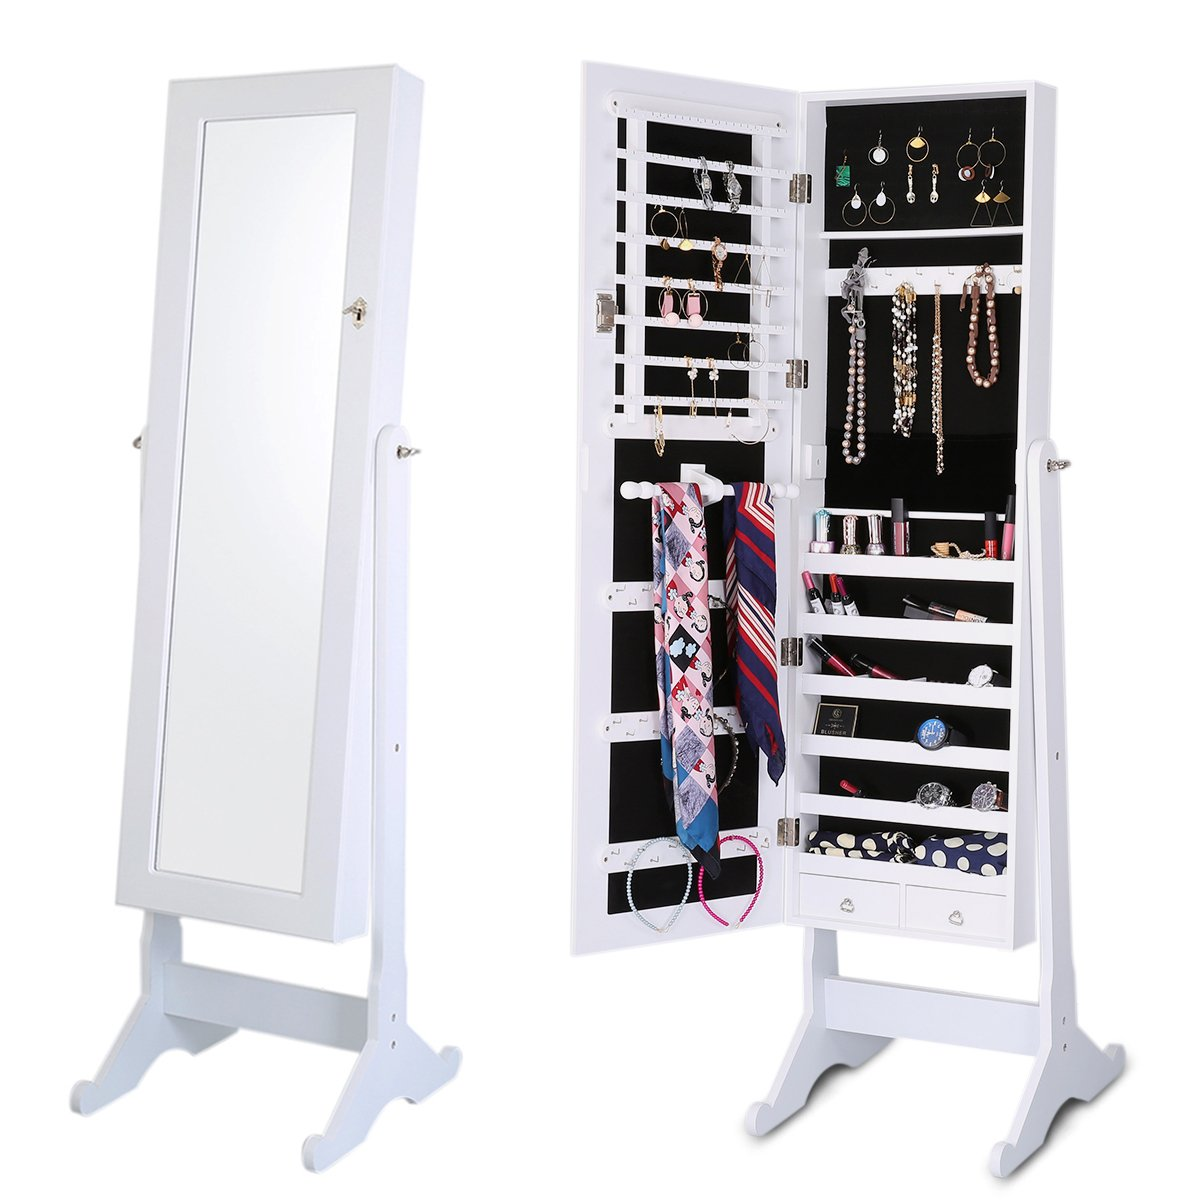 Balight Mirrored Jewelry Cabinet Armoire Lockable Standing Jewelry Armoire Organizer Mirrored Jewelry Armoire with Stand (White)